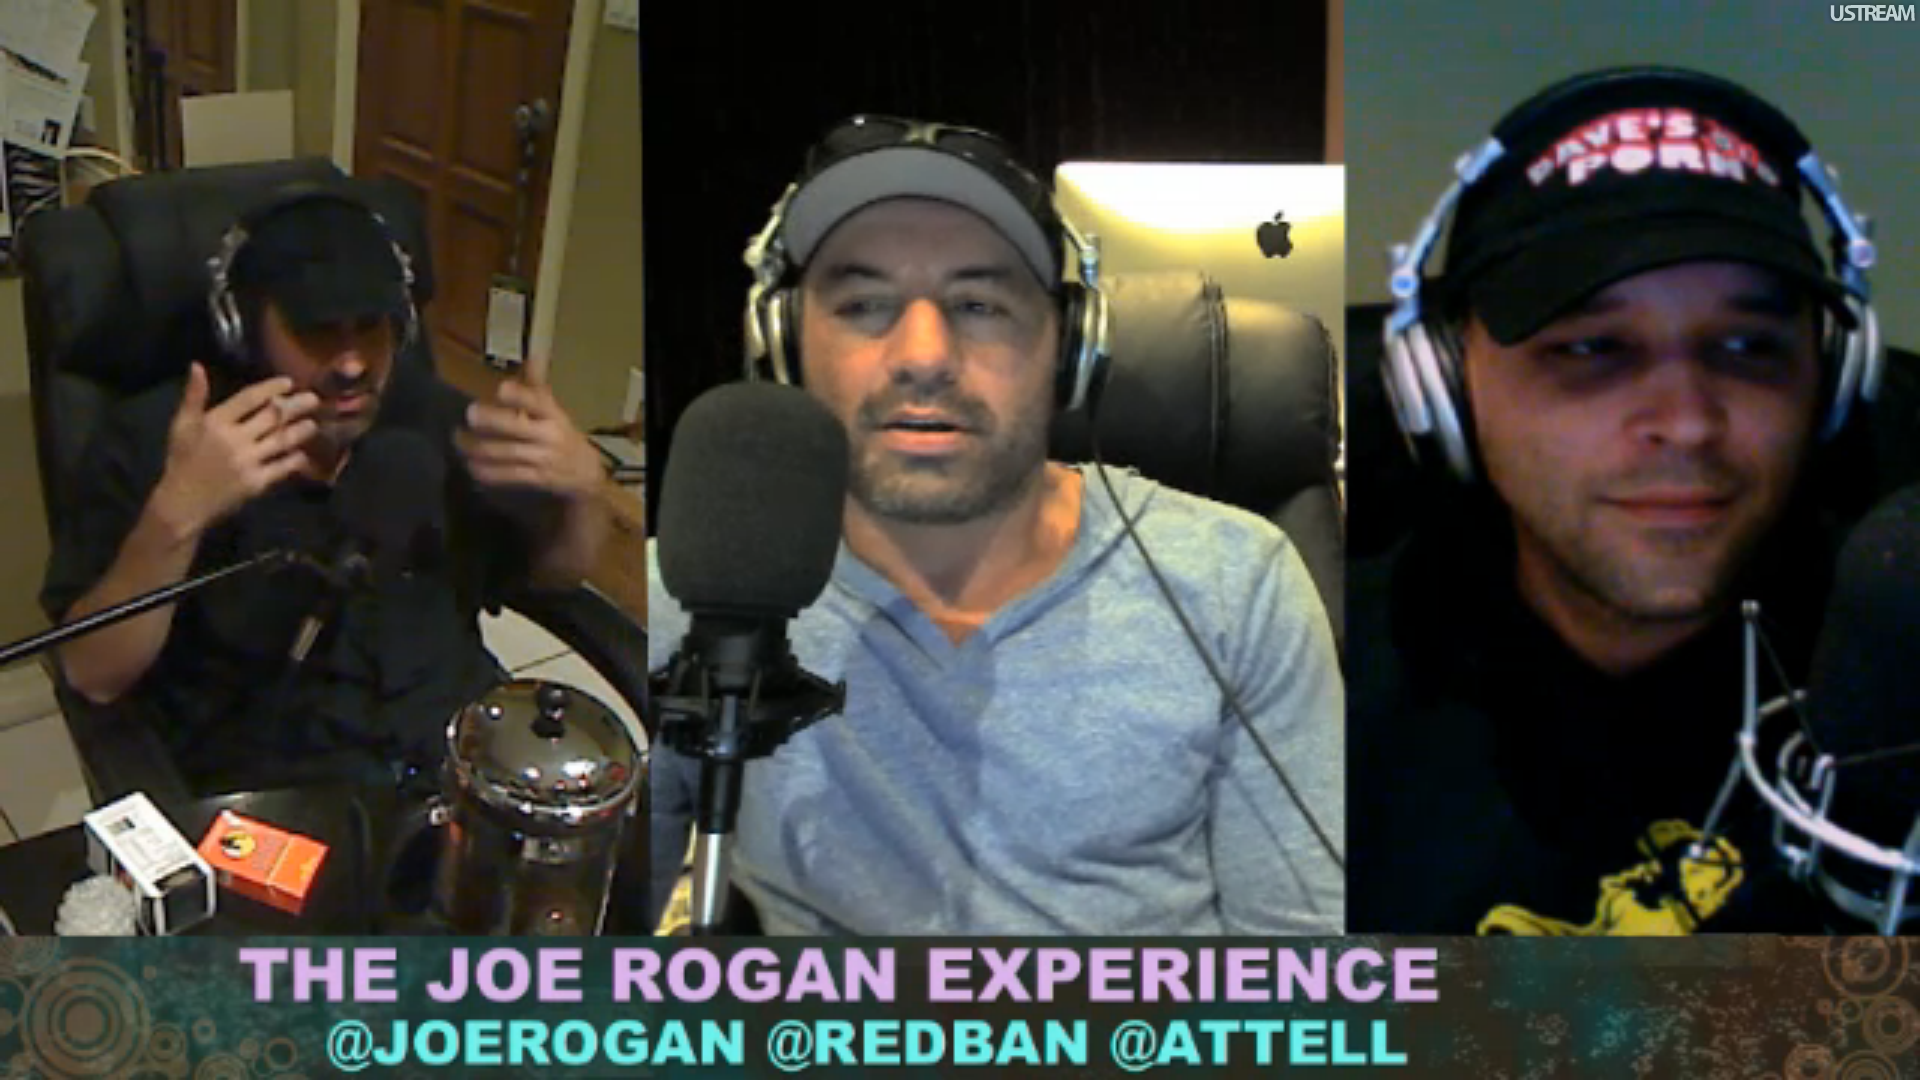 The Joe Rogan Experience PODCAST #155 - Dave Attell, Brian Redban